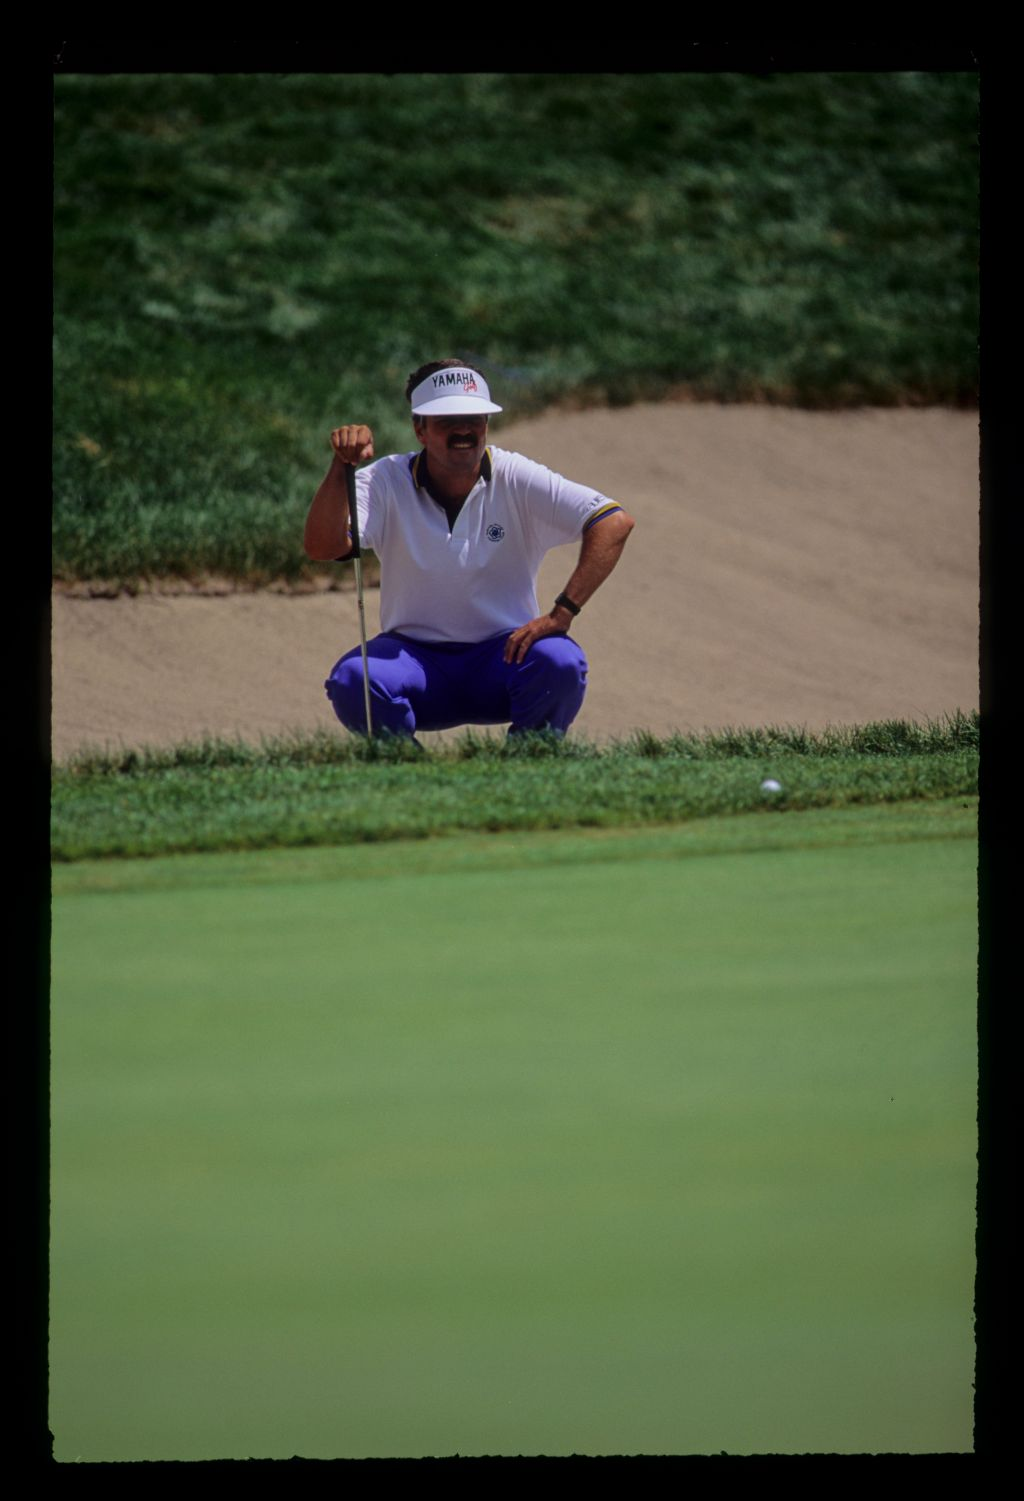 Scott Simpson preparing to chip from the greenside rough during the 1991 US Open